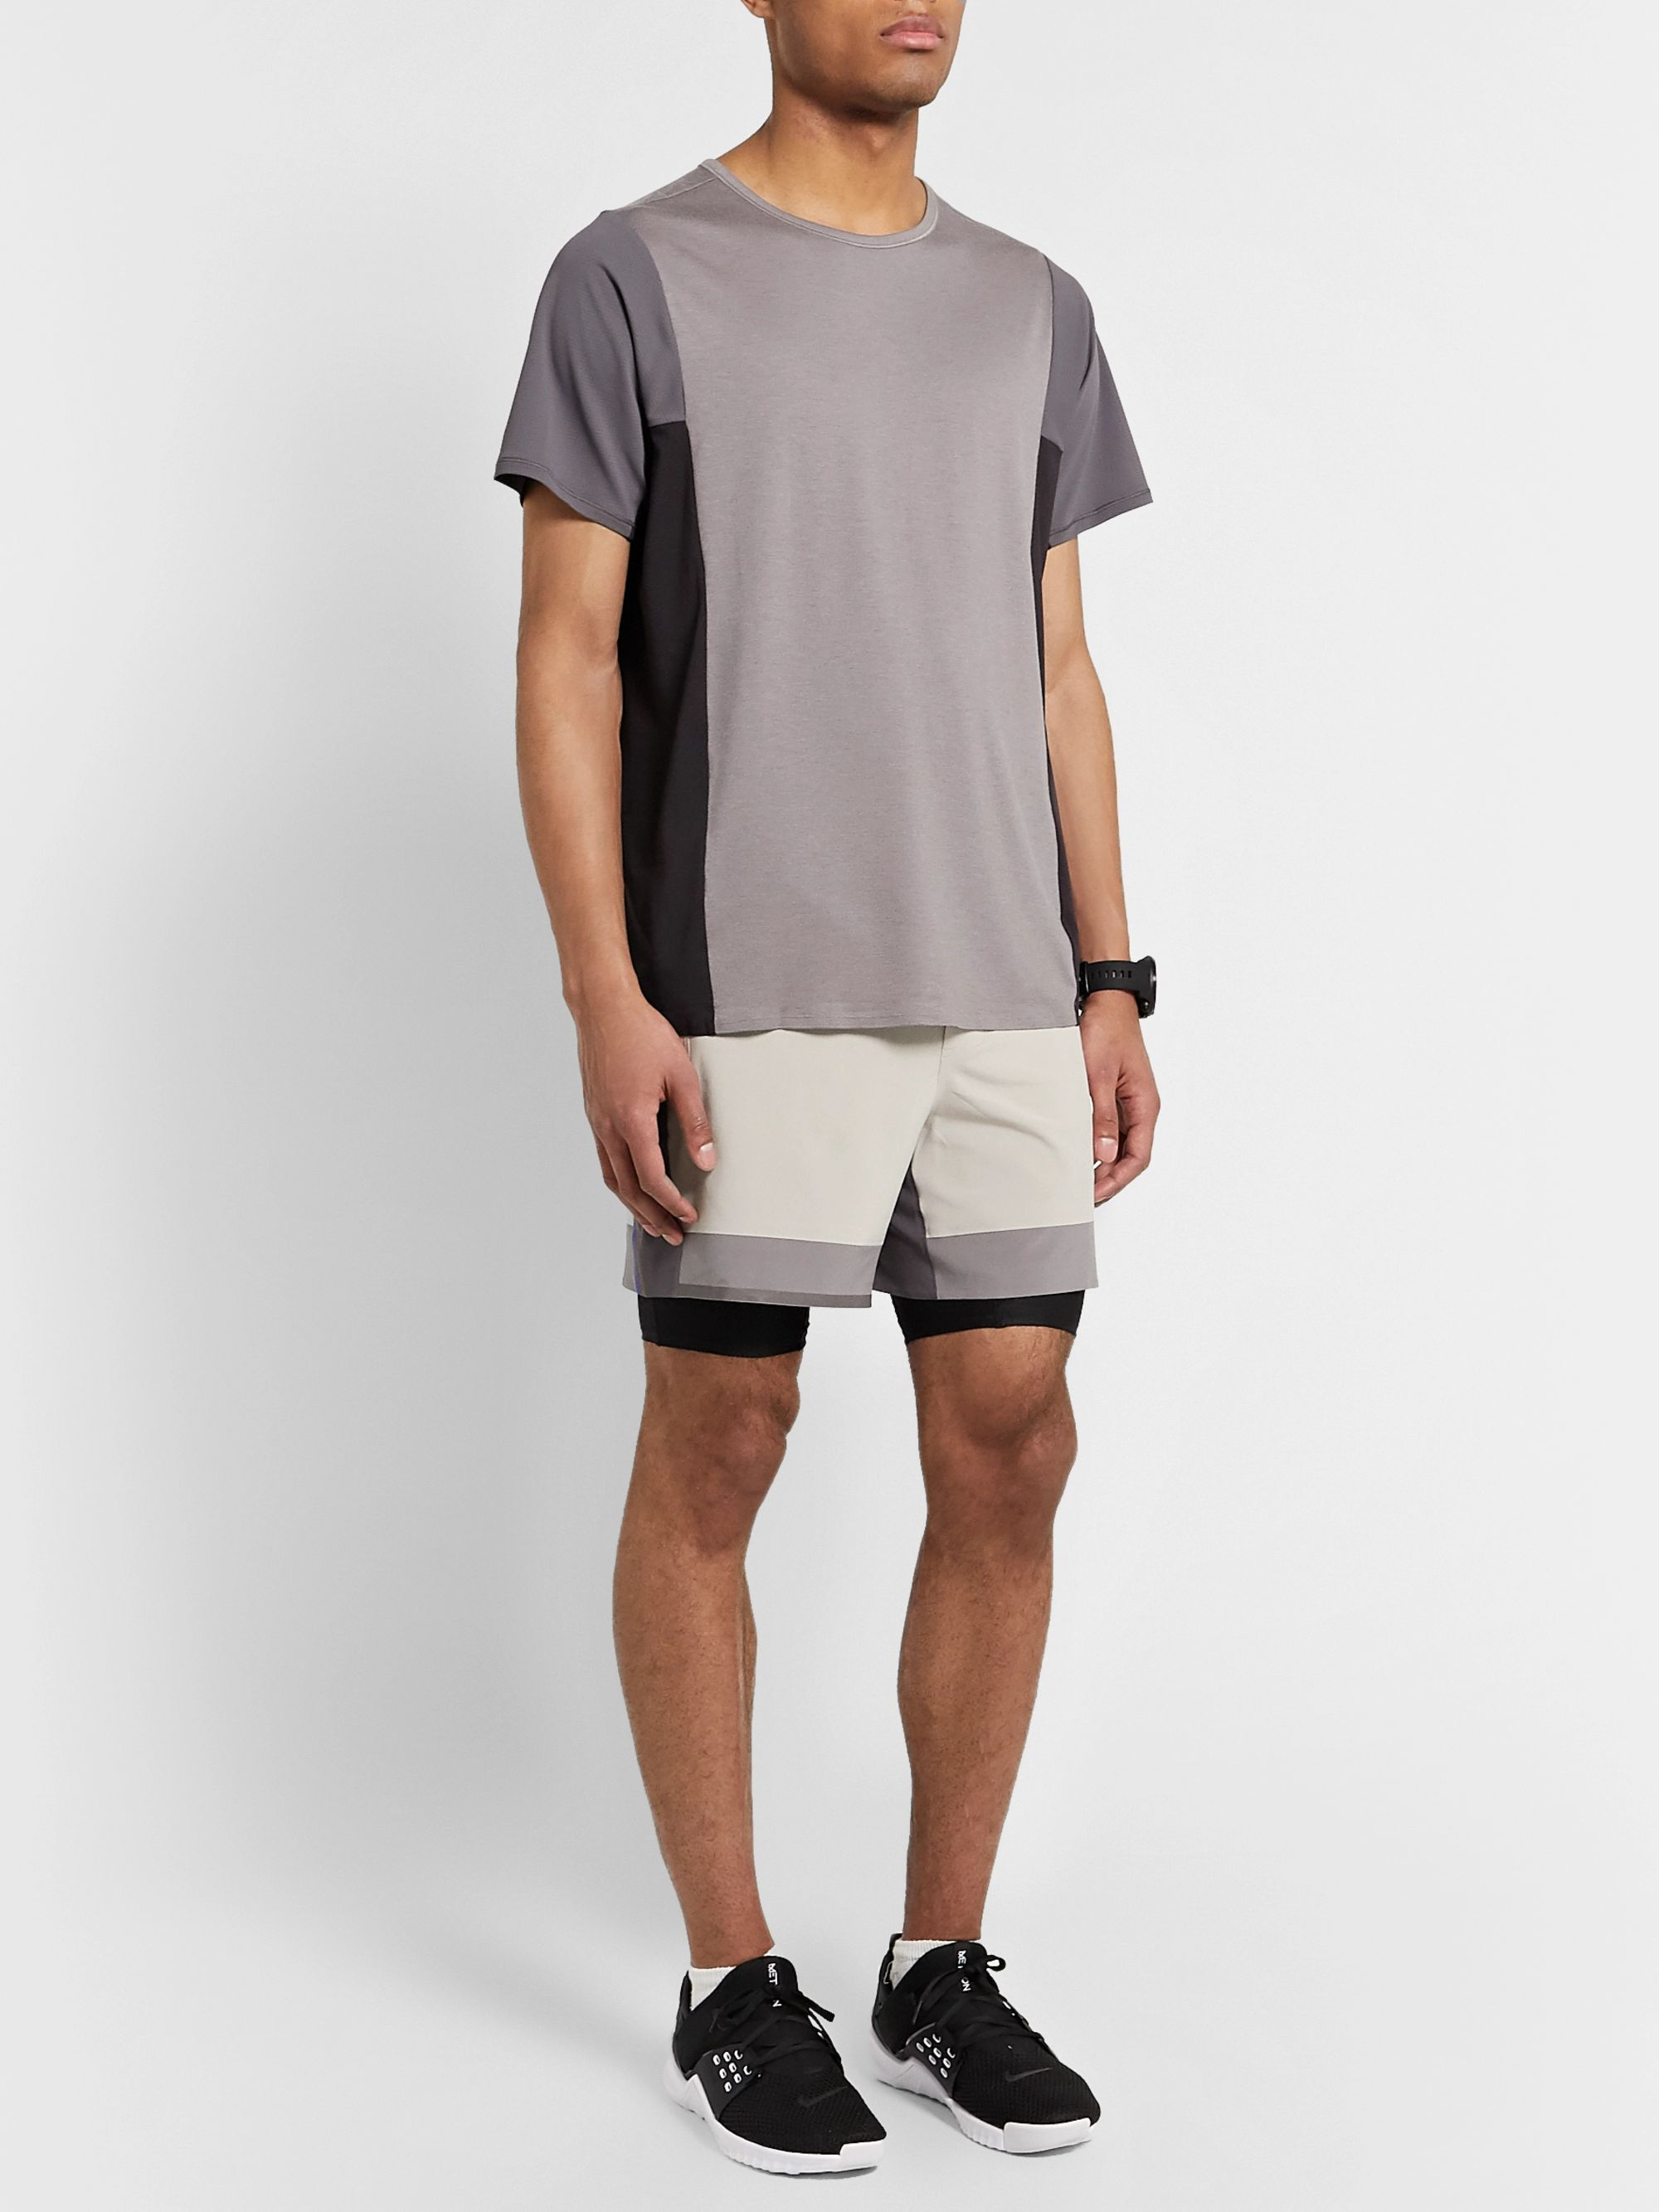 Lululemon + Robert Geller Take the Moment Colour-Block Mesh T-Shirt